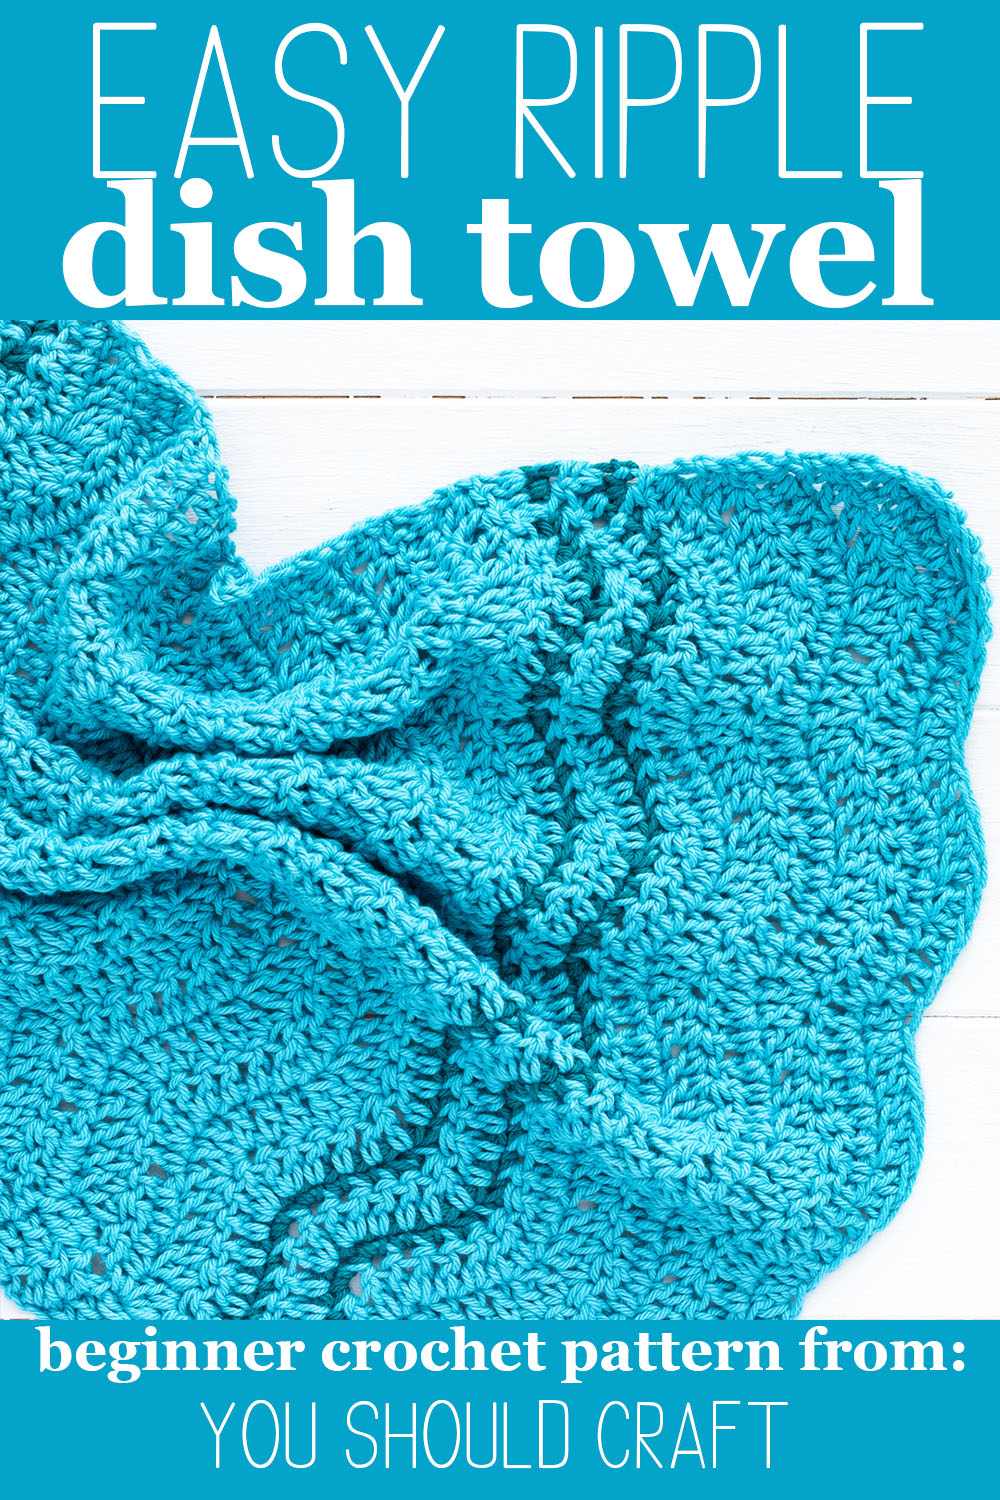 """blue crocheted fabric with stripes and text reading """"easy ripple dish towel - beginner crochet pattern from you should craft"""""""